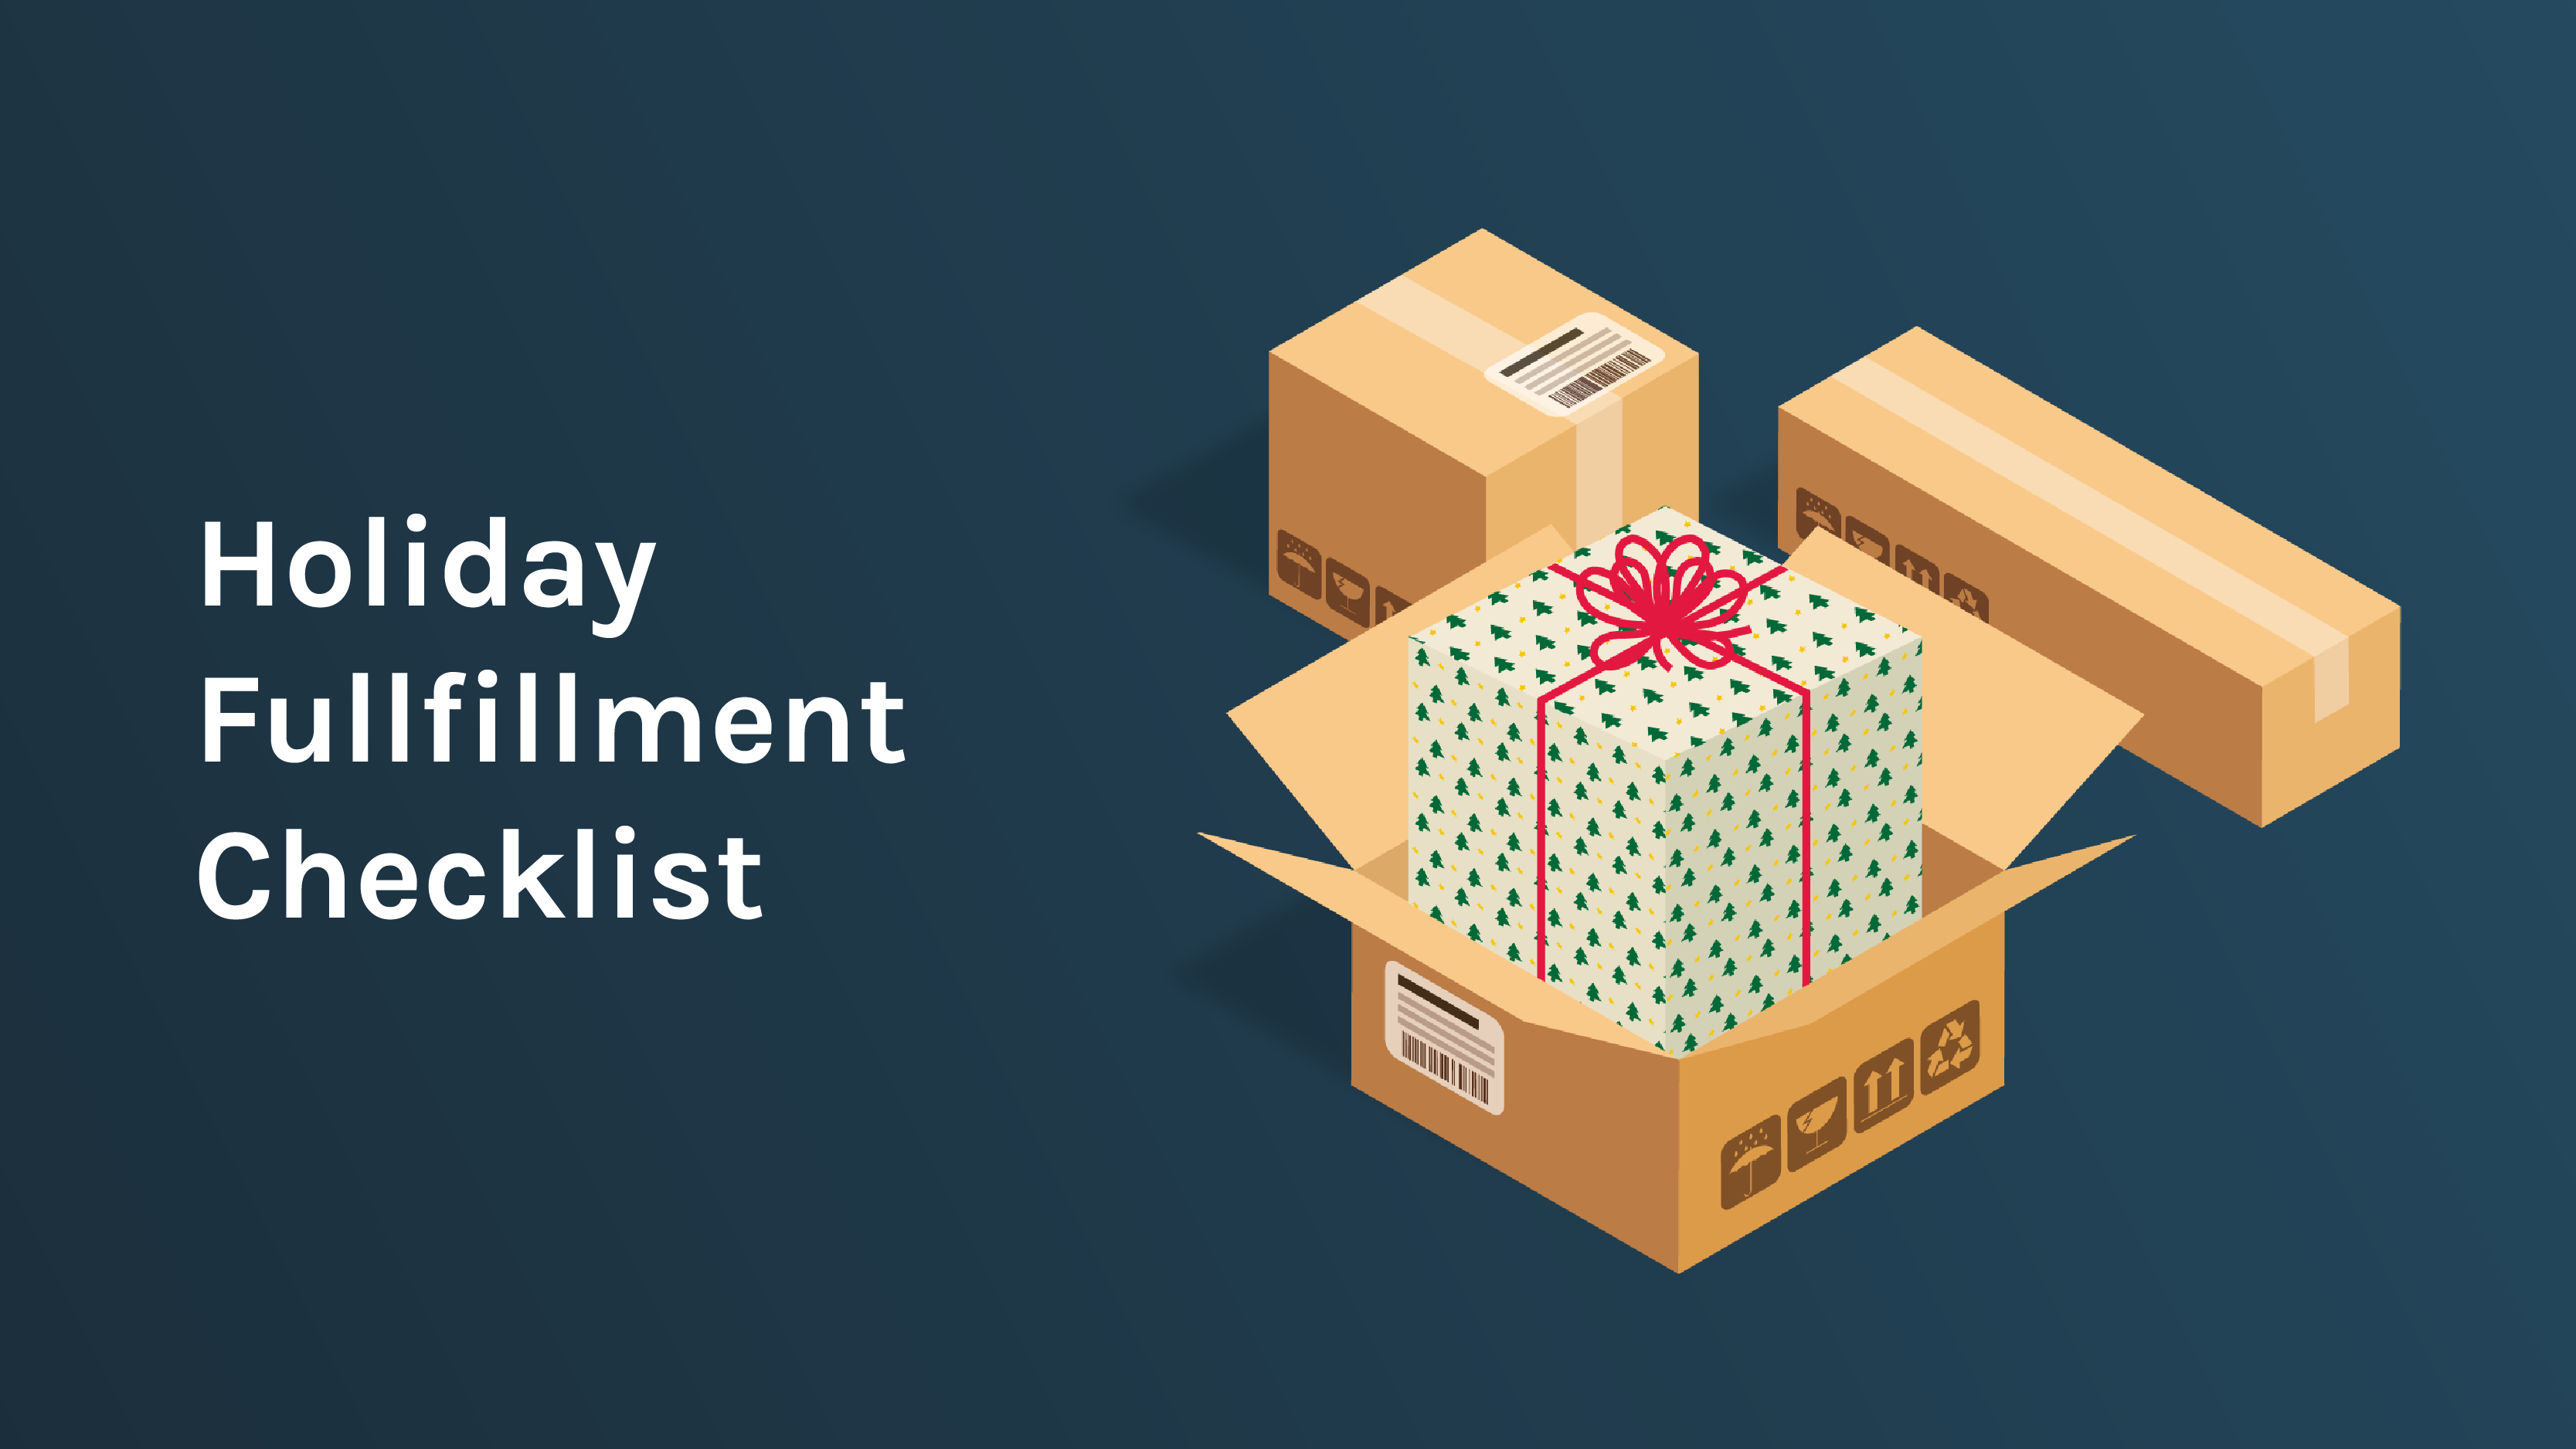 Free Downloadable Holiday Fullfilment Checklist